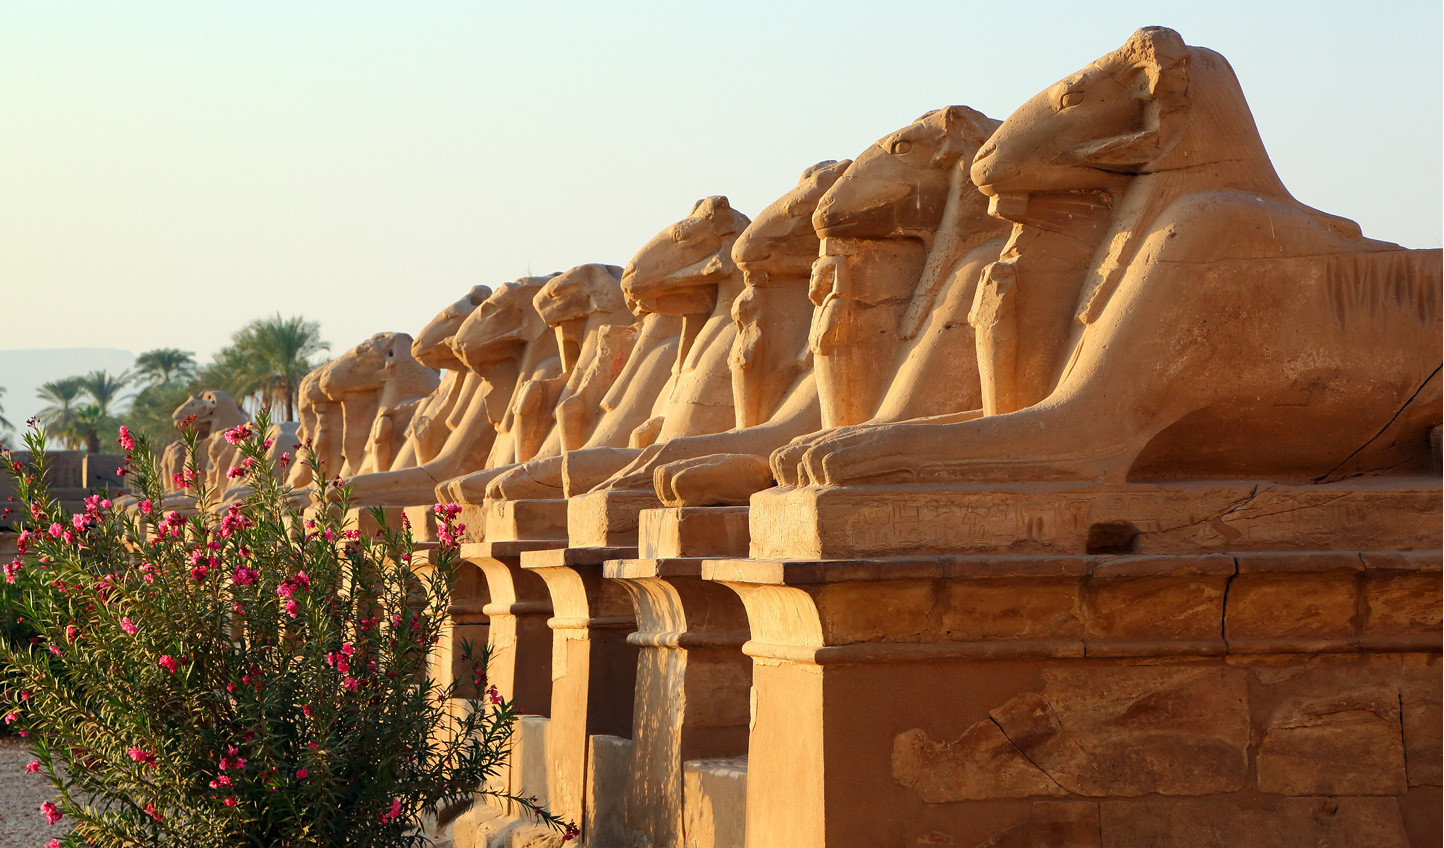 Explore the mighty temple complex of Karnak